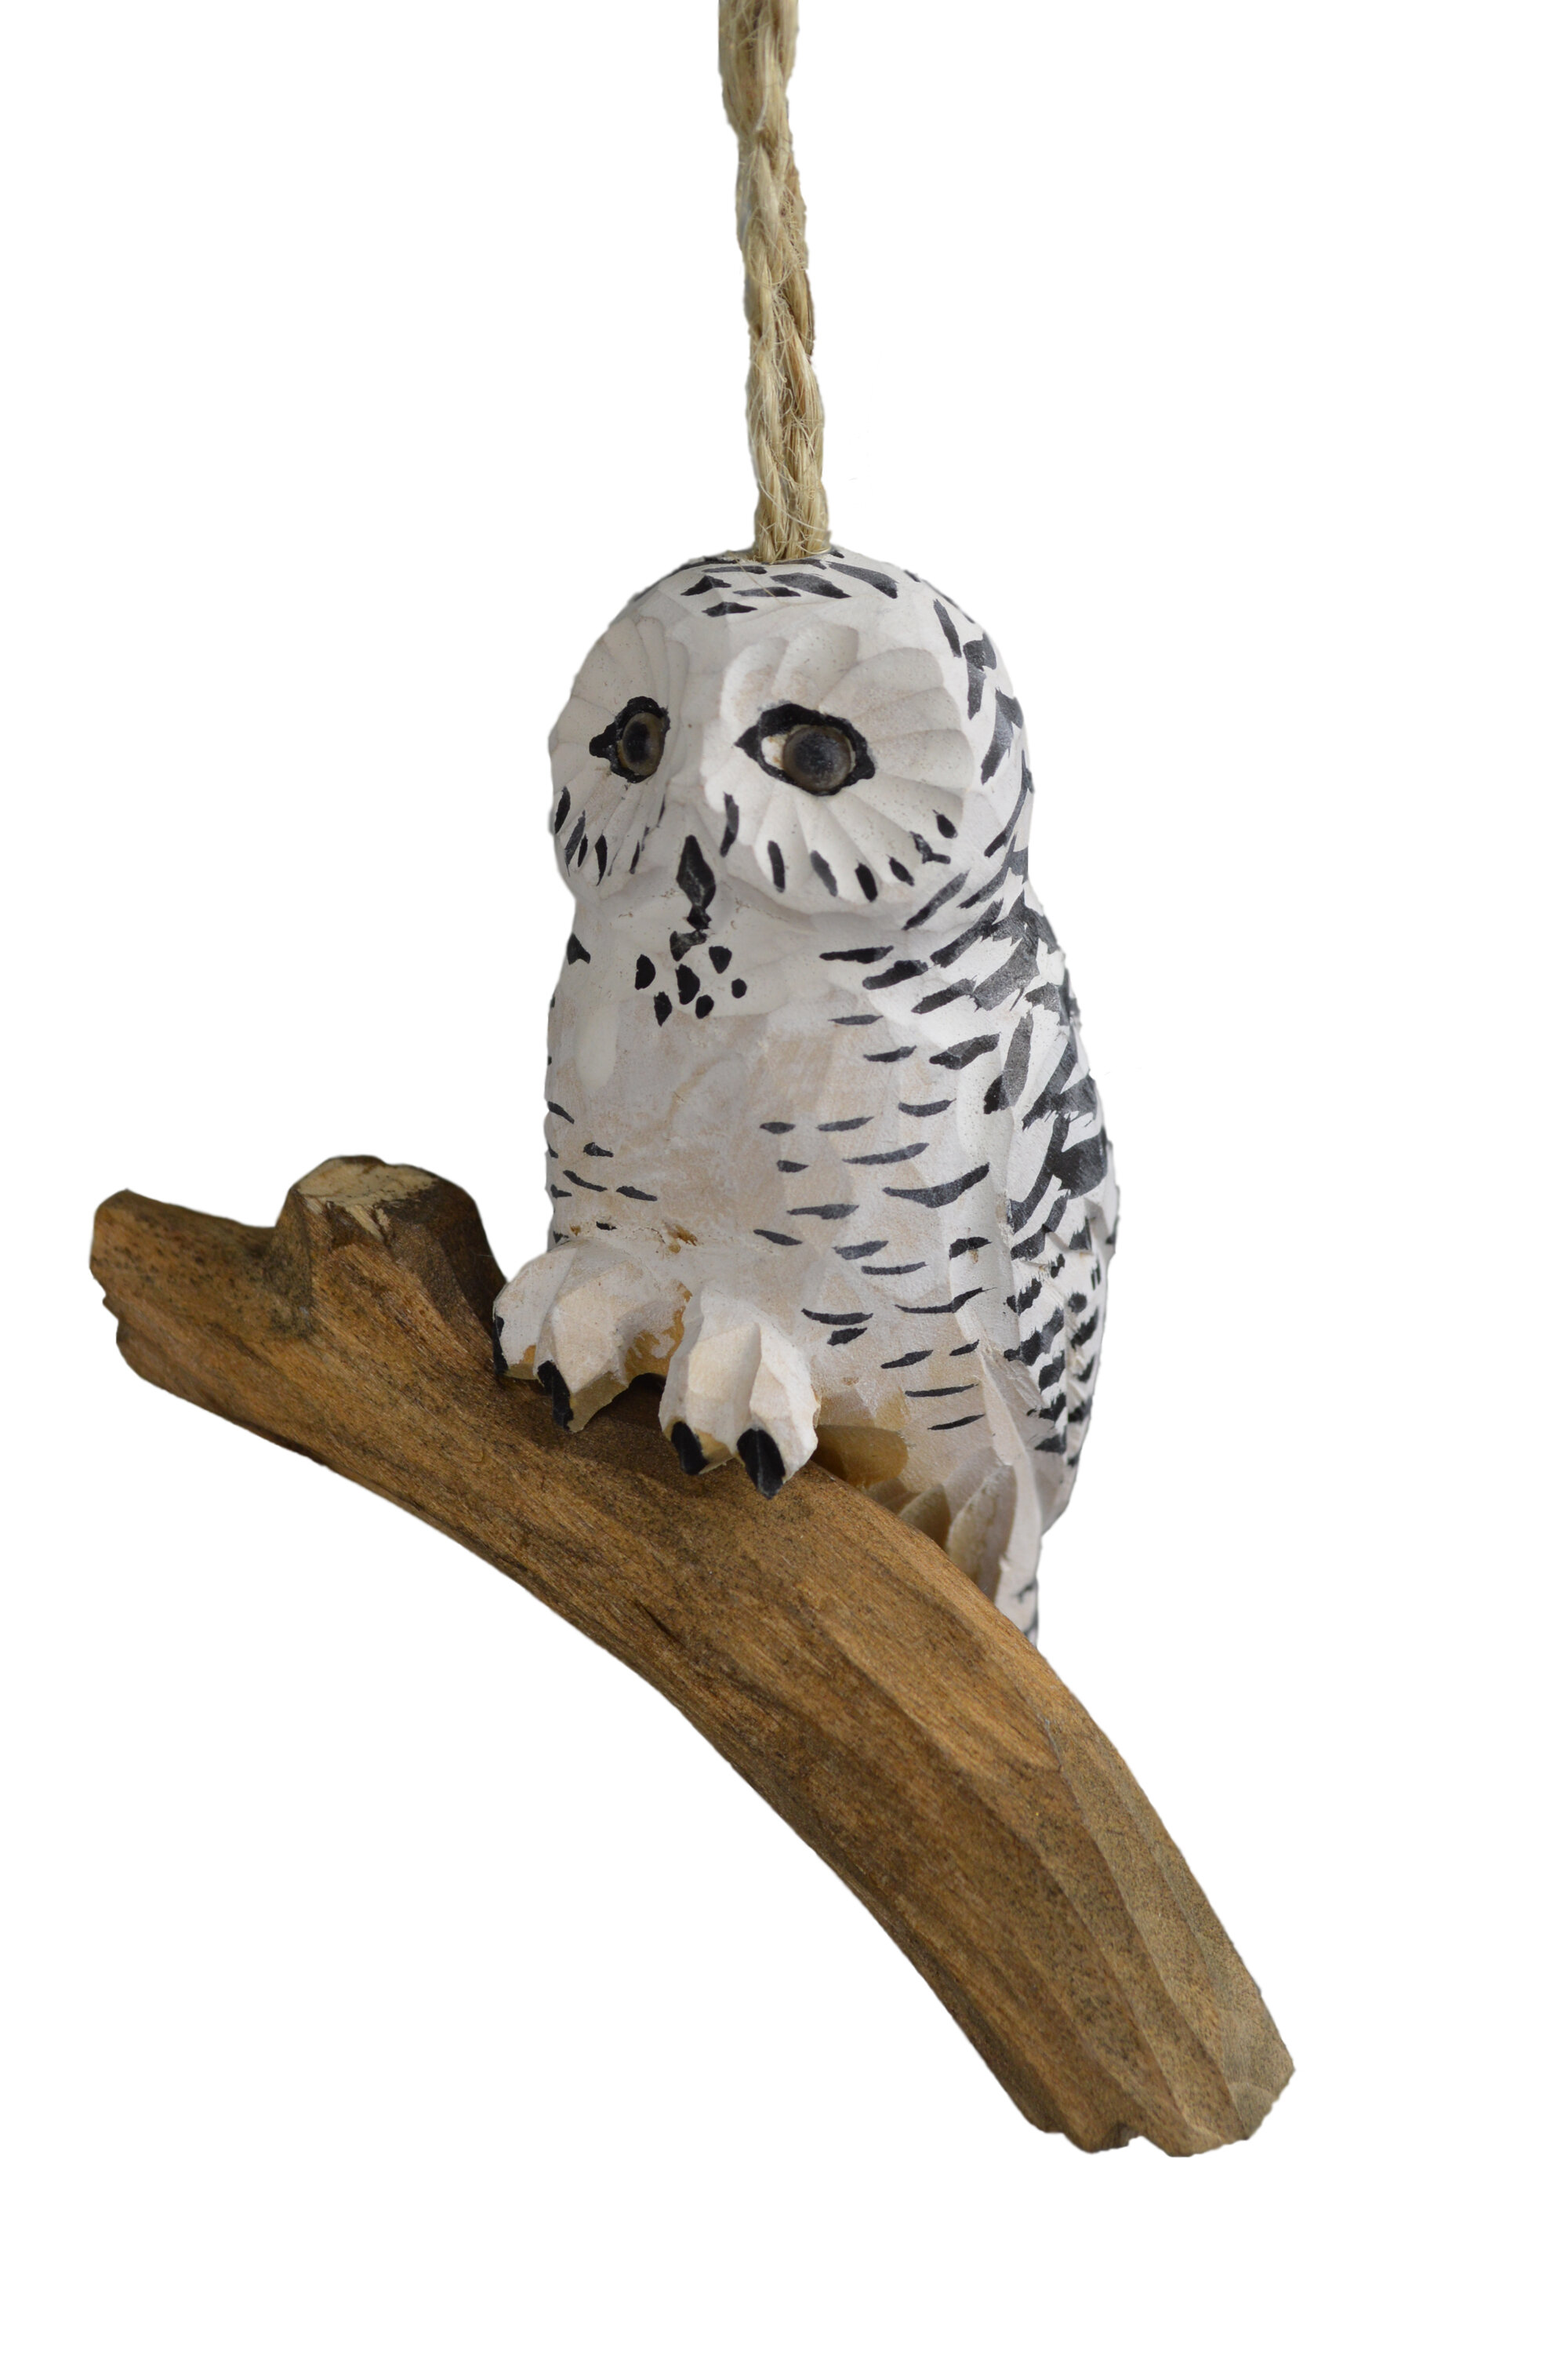 The Holiday Aisle Handcrafted Wood Snowy Owl Hanging Figurine Ornament Reviews Wayfair